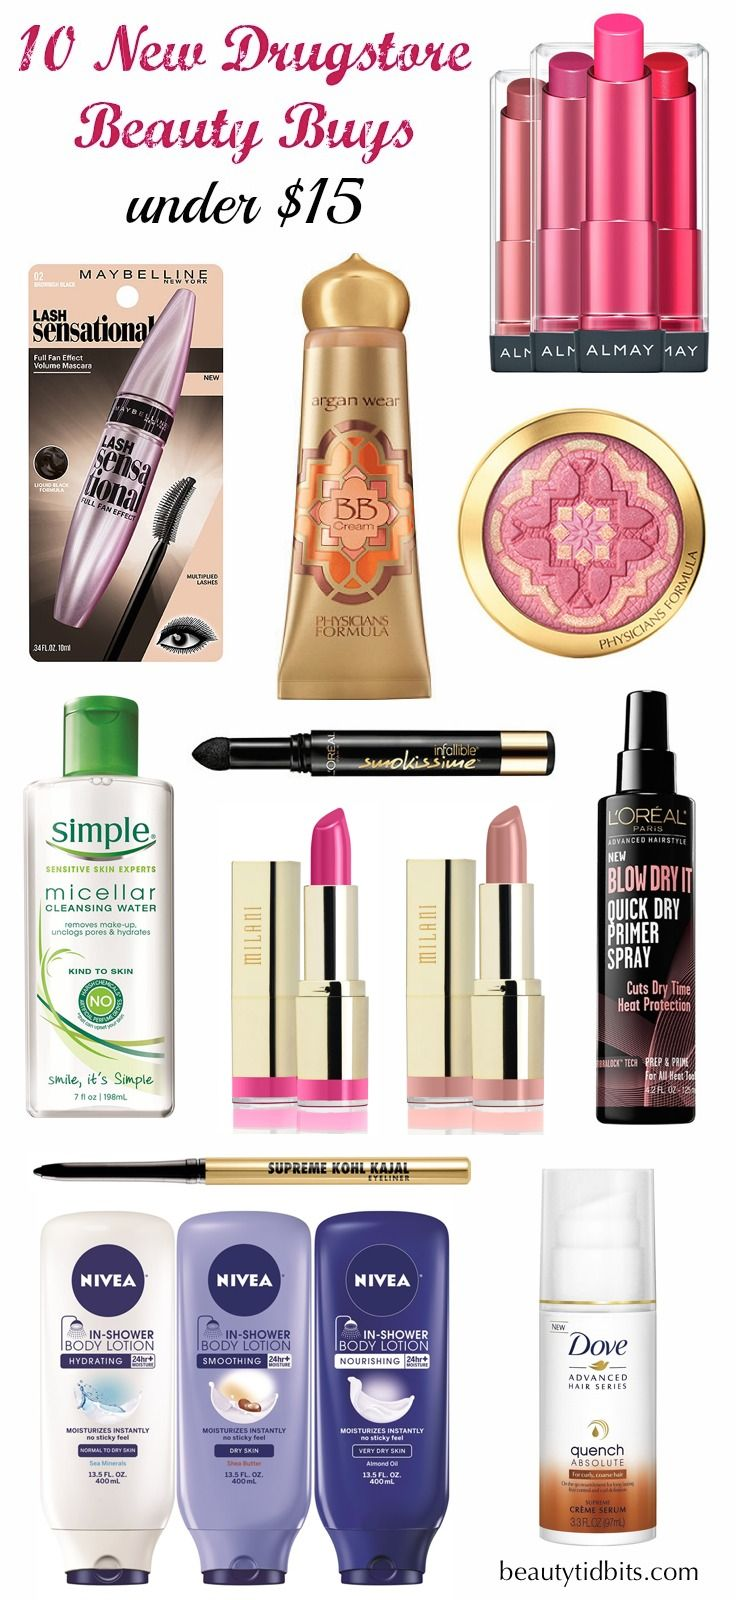 3 new drugstore noteworthy beauty finds